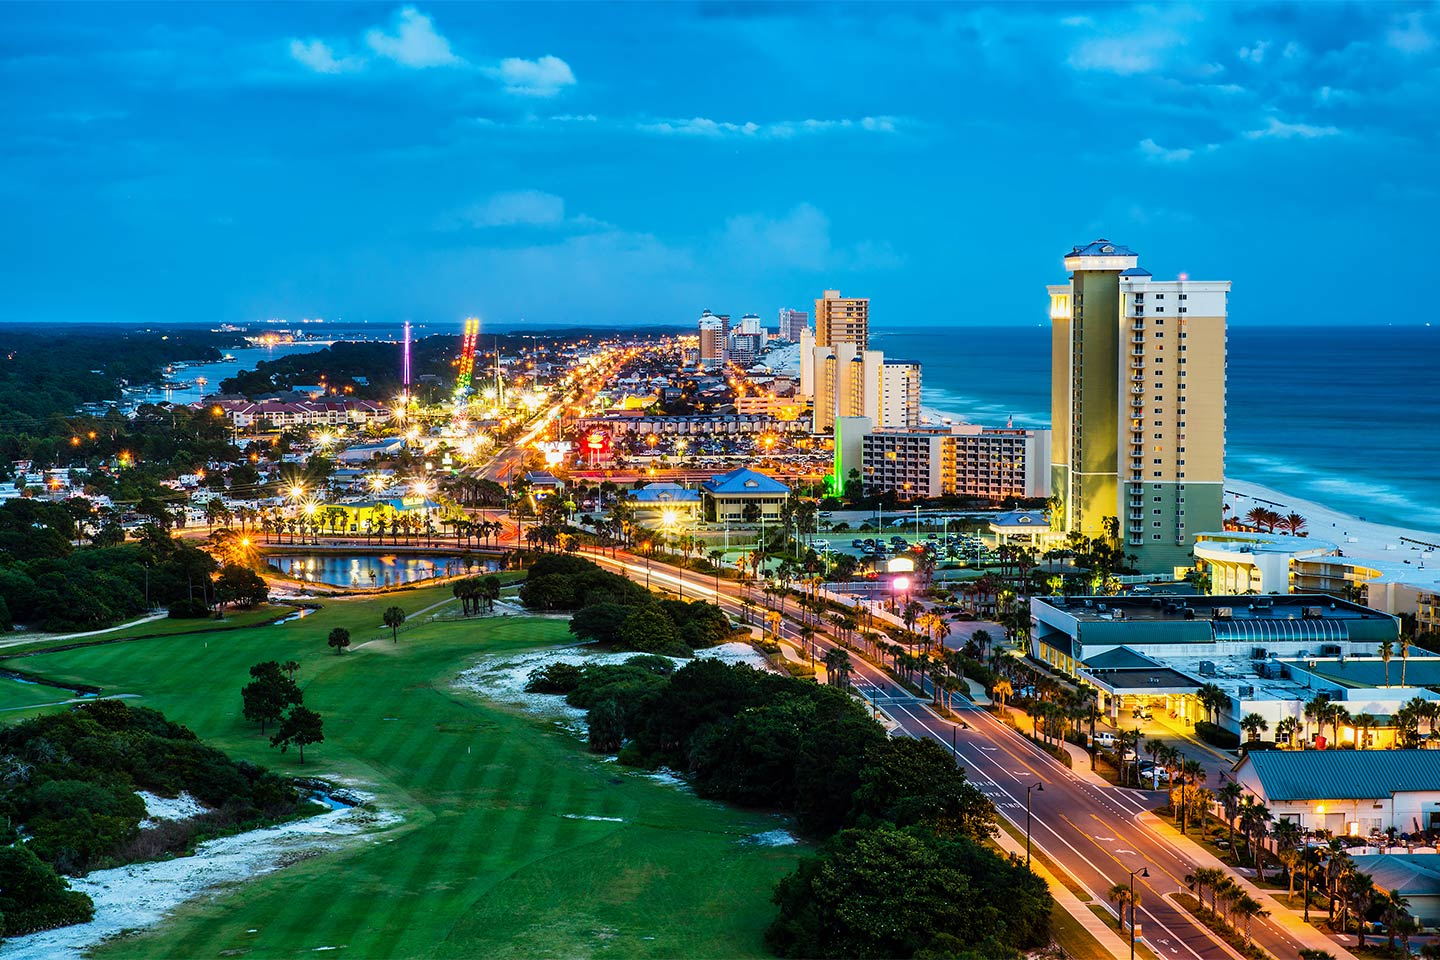 An aerial view of downtown Panama City Beach by night